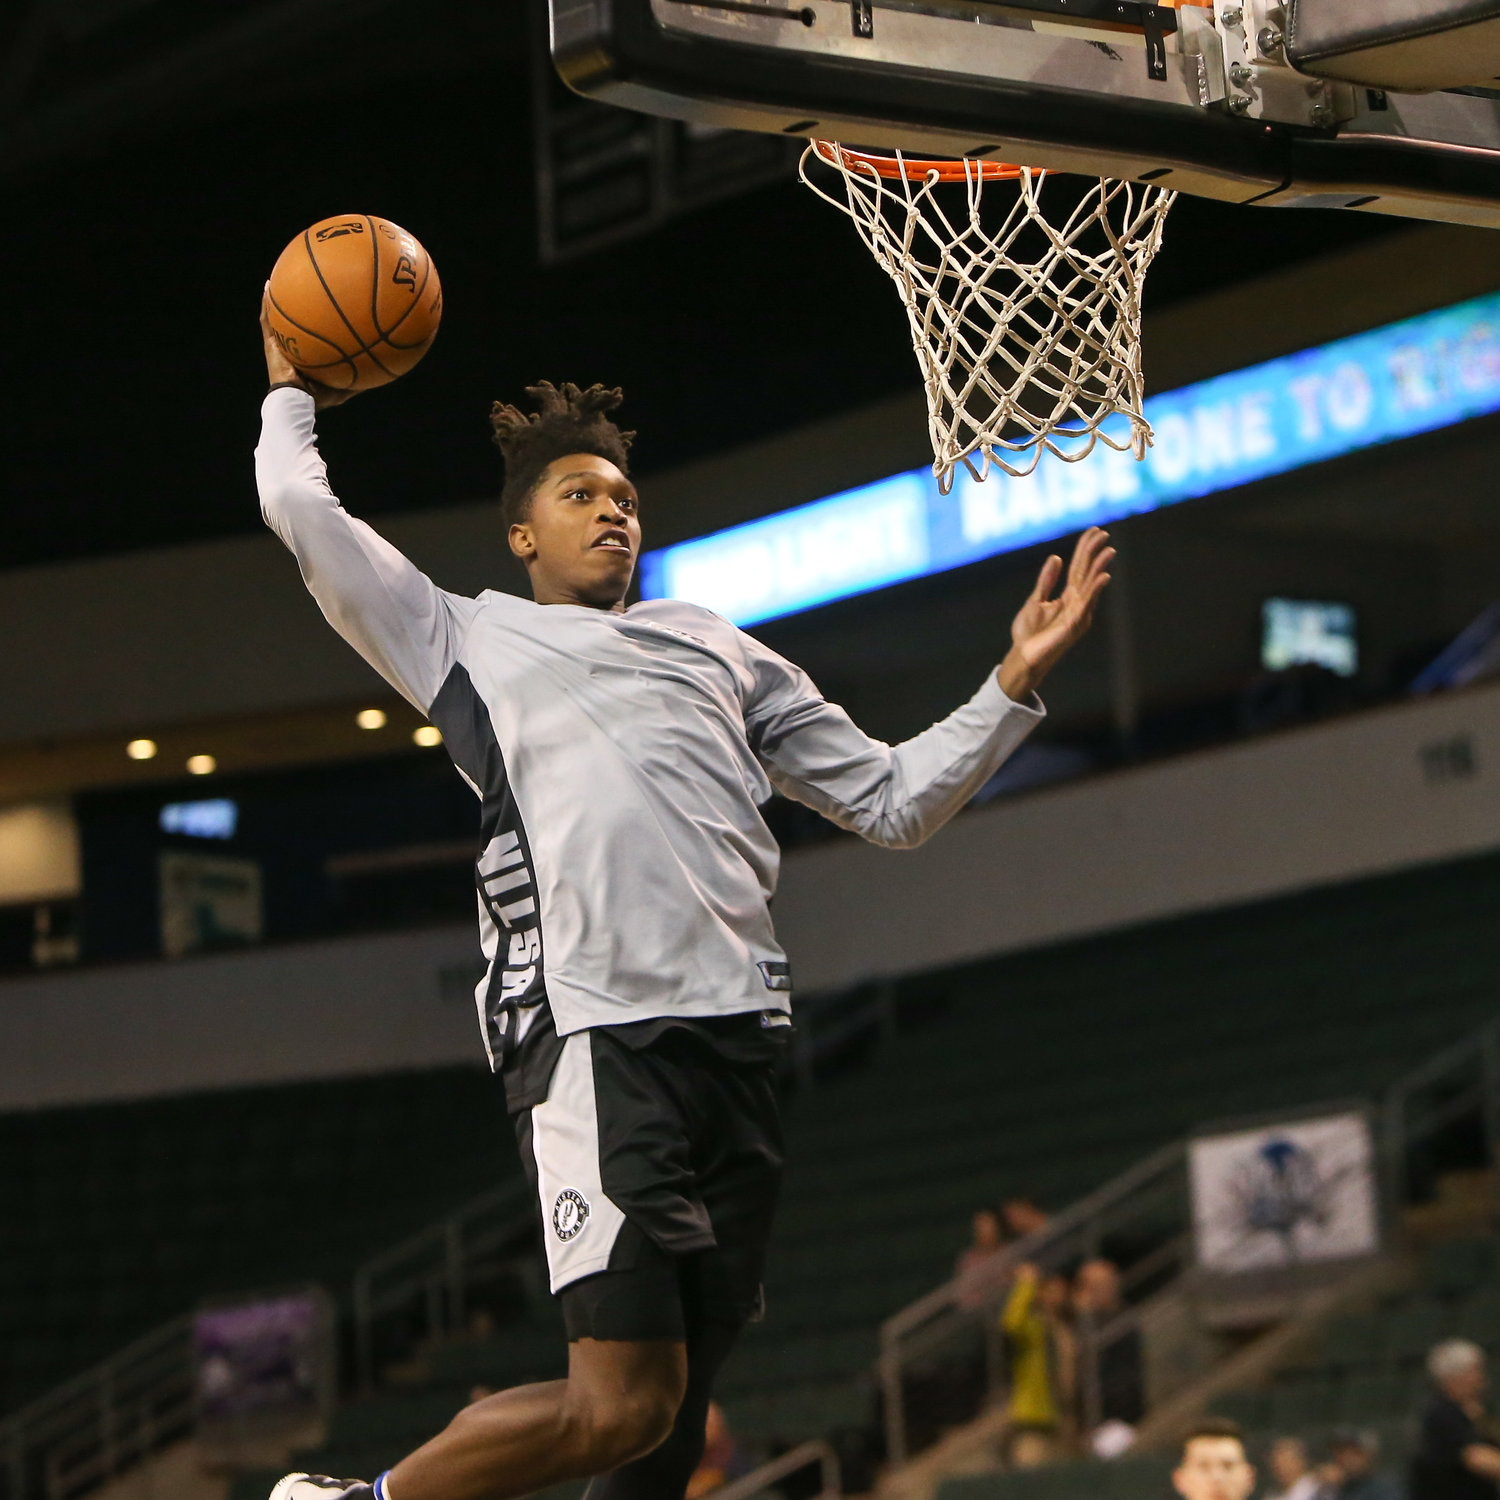 Guard Lonnie Walker IV averaged 16.6 points, 2.9 rebounds and 1.8 assists in 29 games in Austin this season. As he recovered from an injury, he spent most of this season bouncing between the G League and NBA.